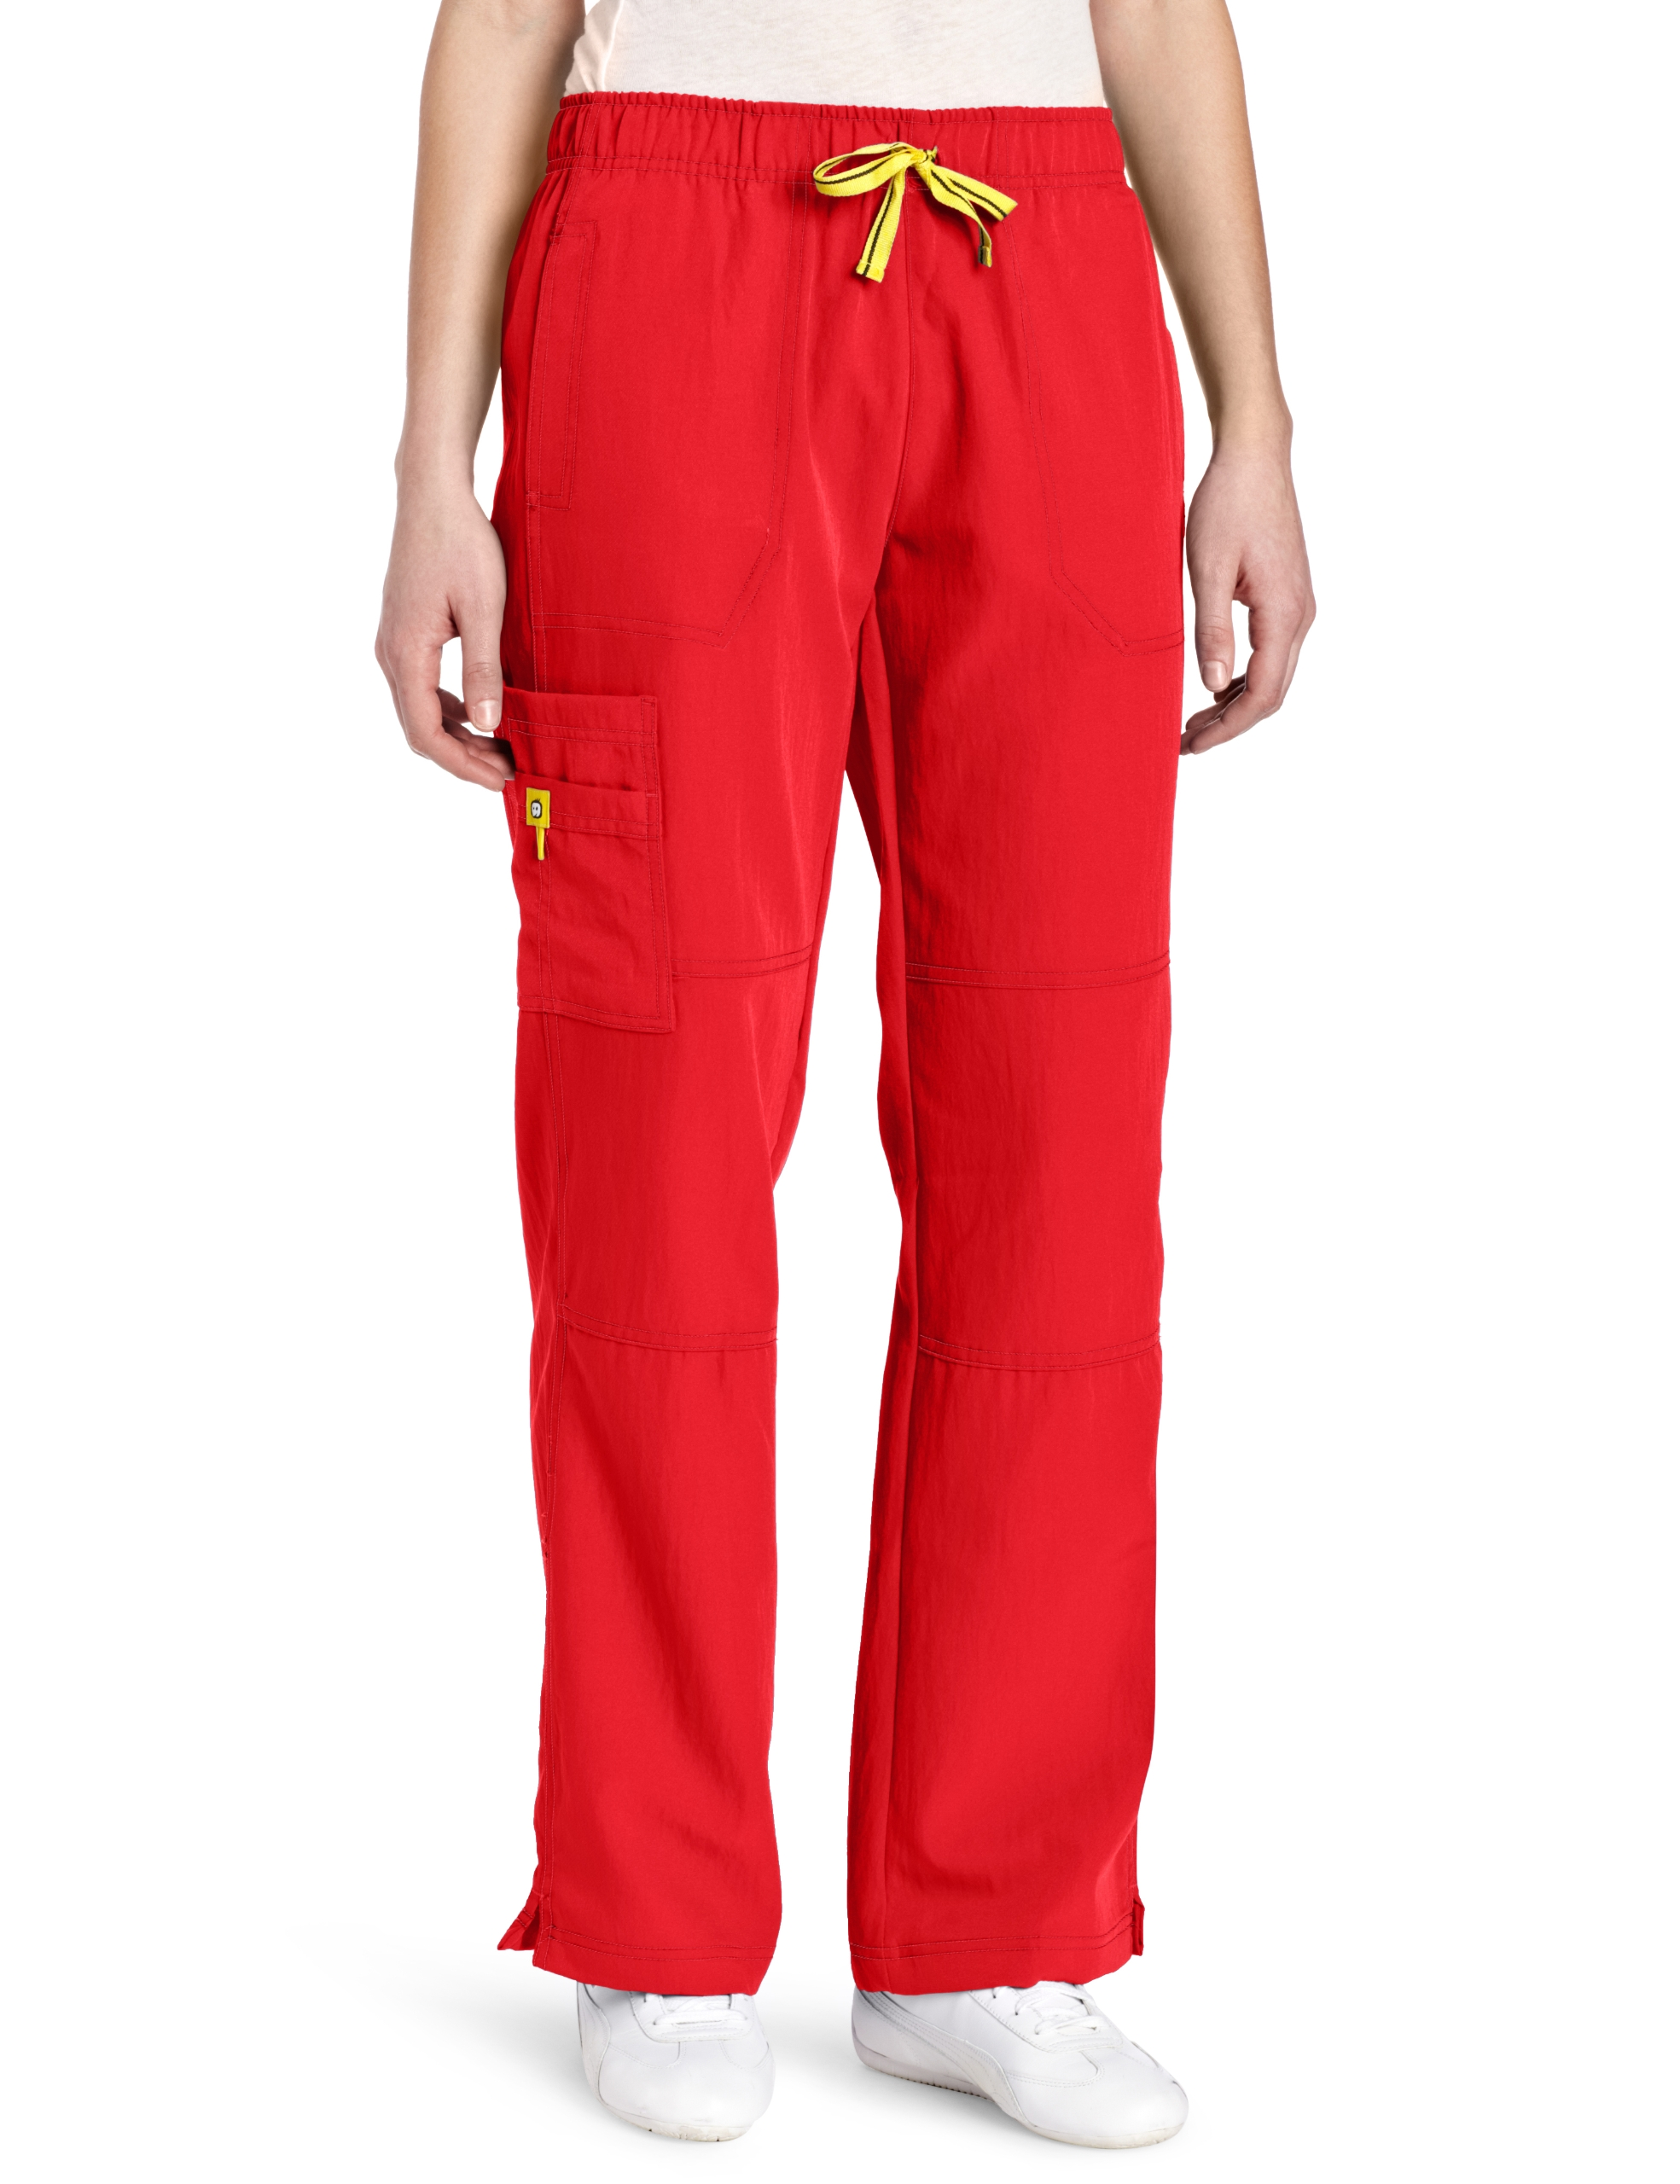 WonderWink Women's Scrubs Four Way Stretch Sporty Cargo Pant, Poppy, X-Small